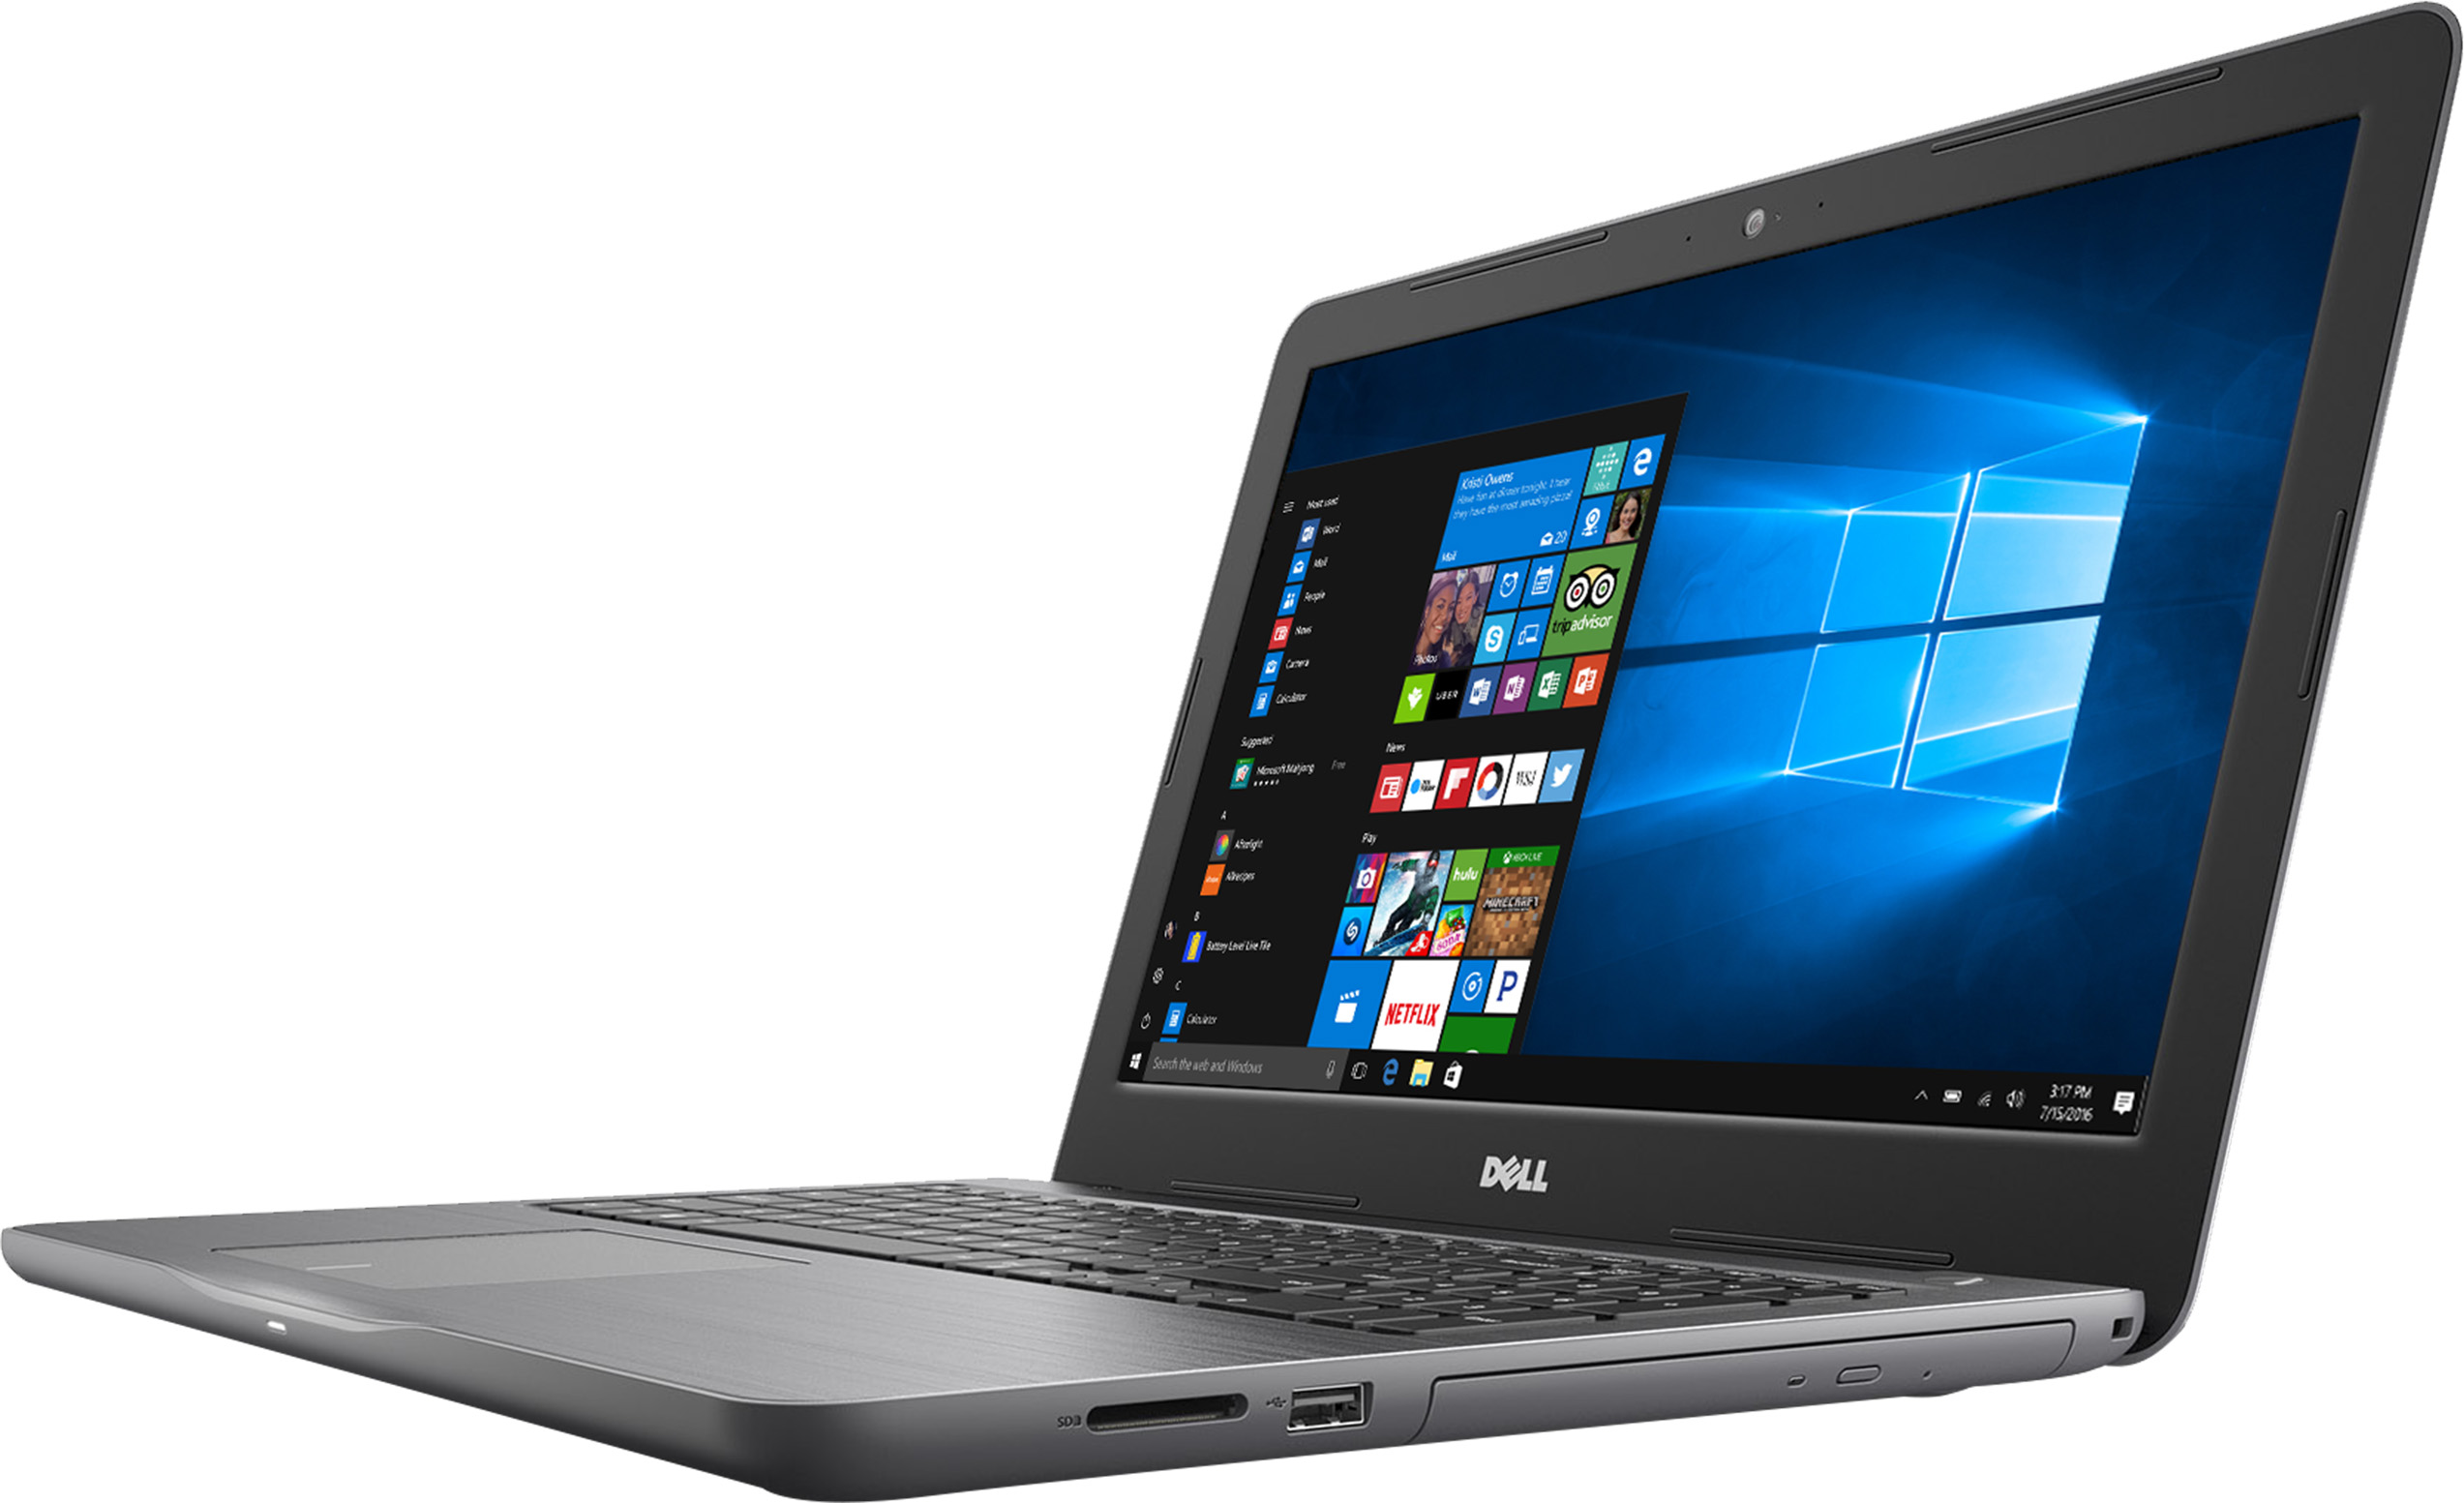 Dell Inspiron 15 5000 Series 5565-i5565-2517GRY Signature Edition Laptop